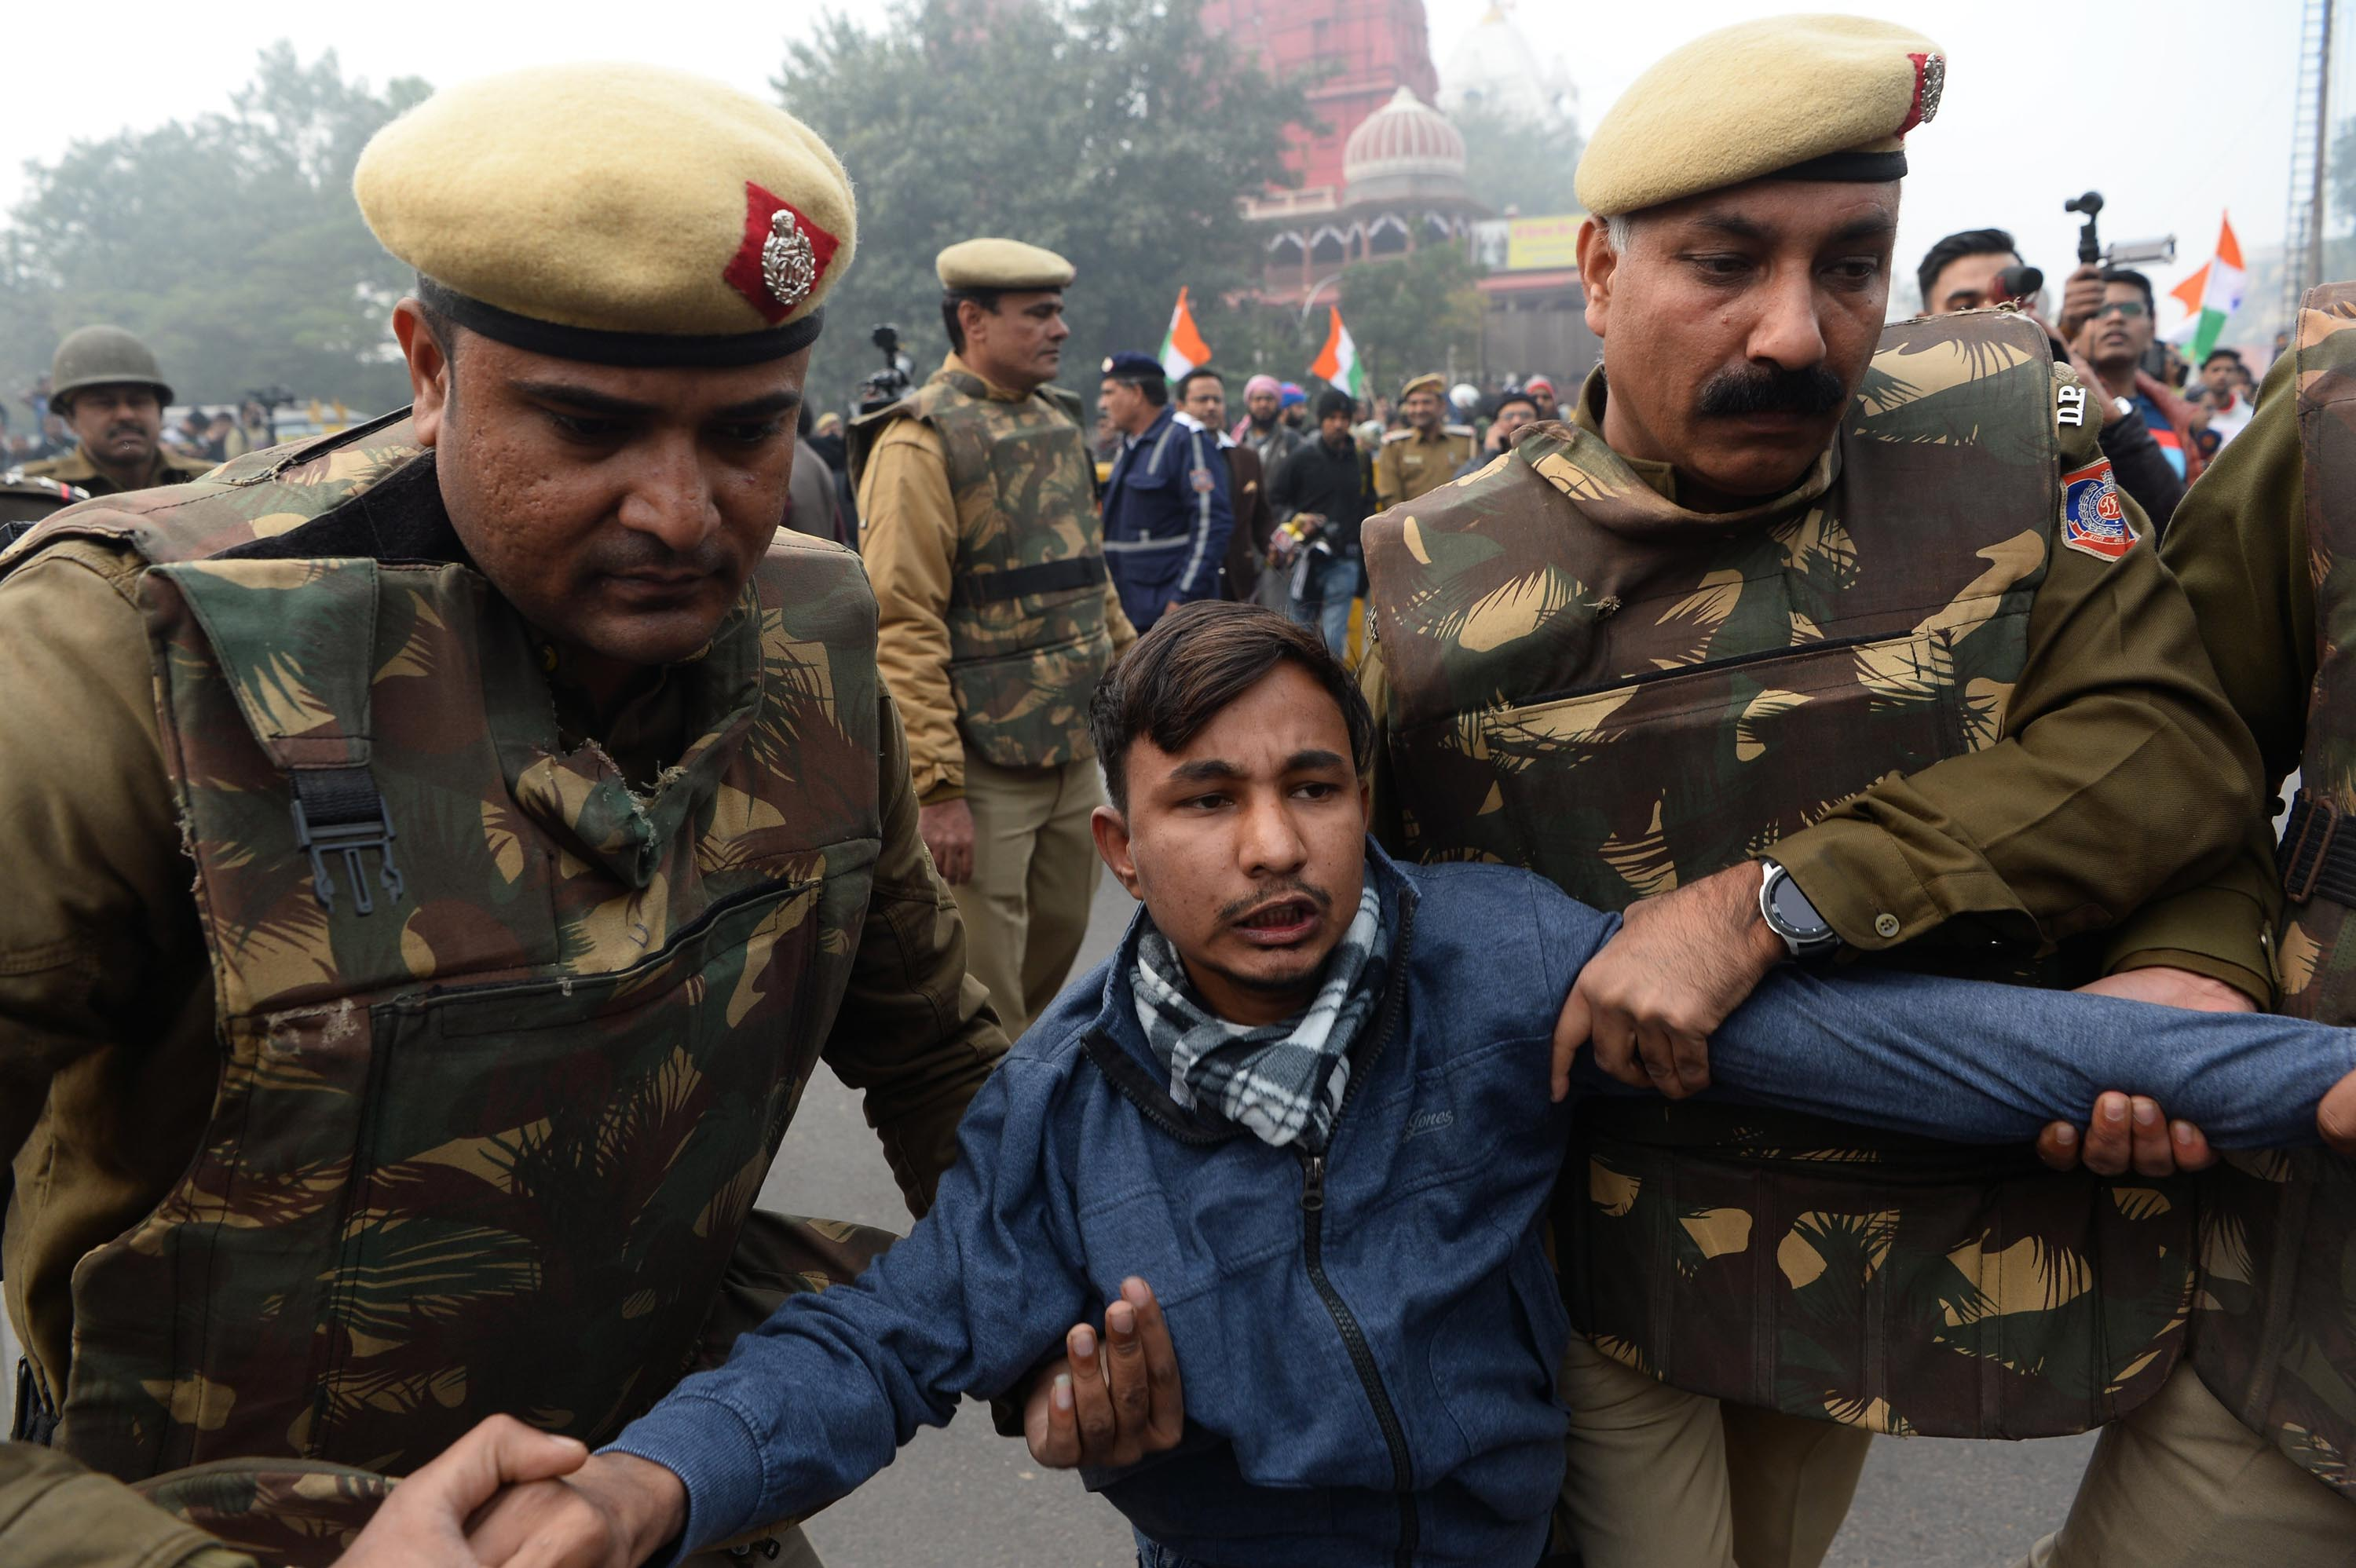 Police detain a protester at a demonstration in New Delhi on Thursday. Photo: Sajjad Hussain/AFP via Getty Images